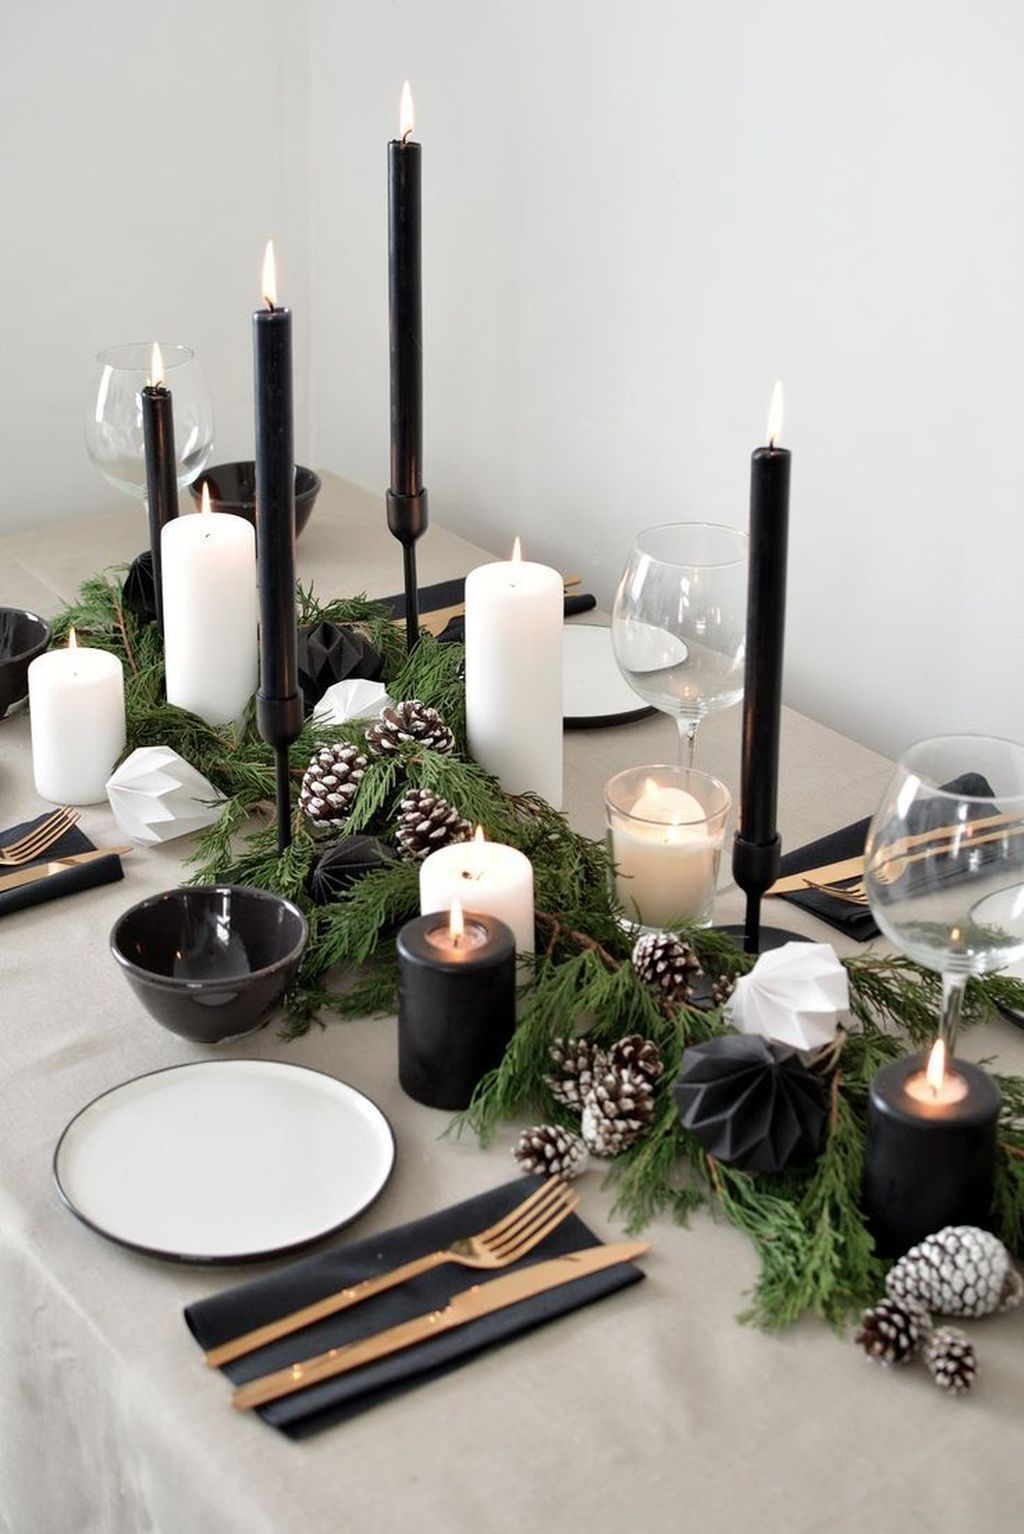 39 Awesome Modern Table Setting Ideas In 2020 With Images